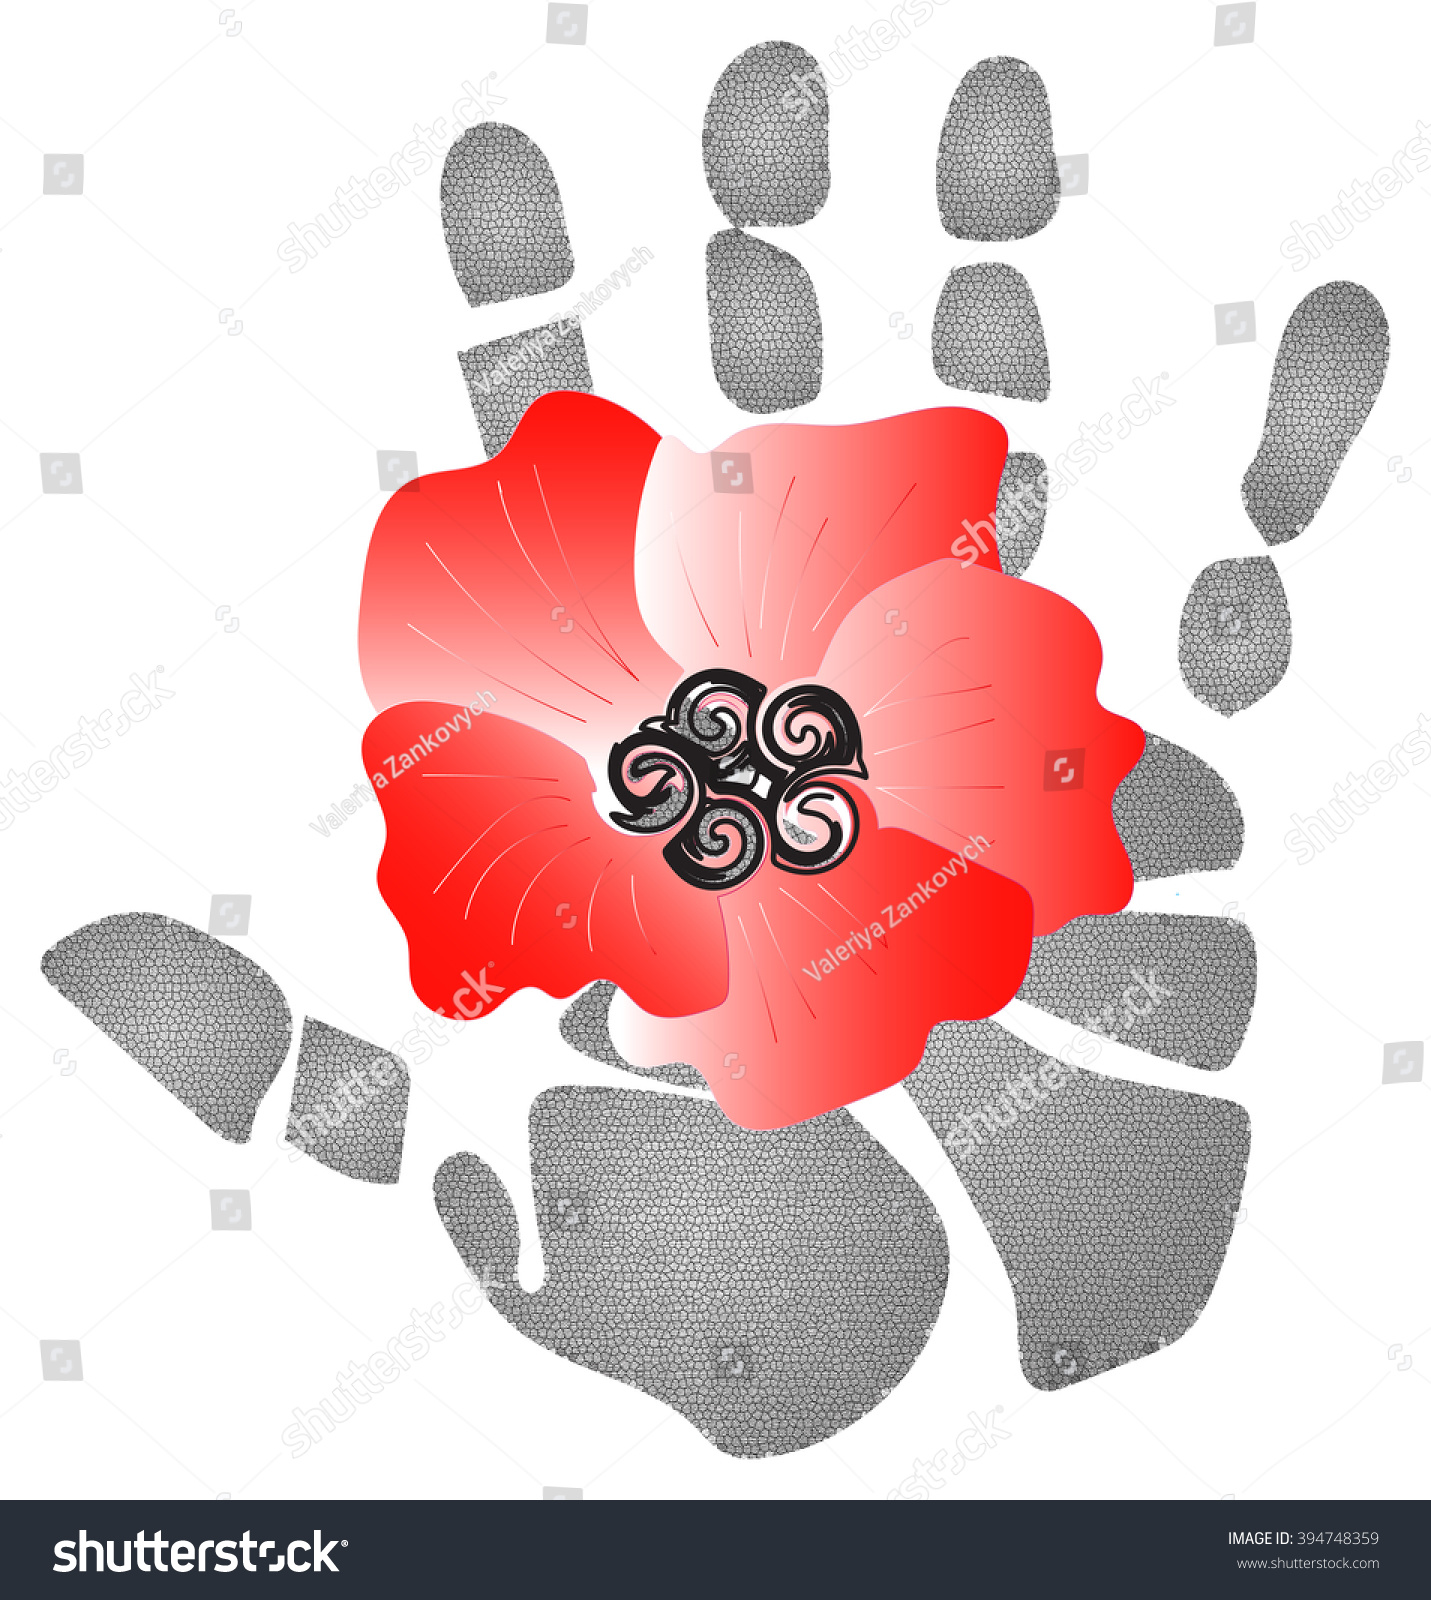 Red poppy flowers ornamental plants symbol stock illustration red poppy flowers are ornamental plants and a symbol of sleep peace blood buycottarizona